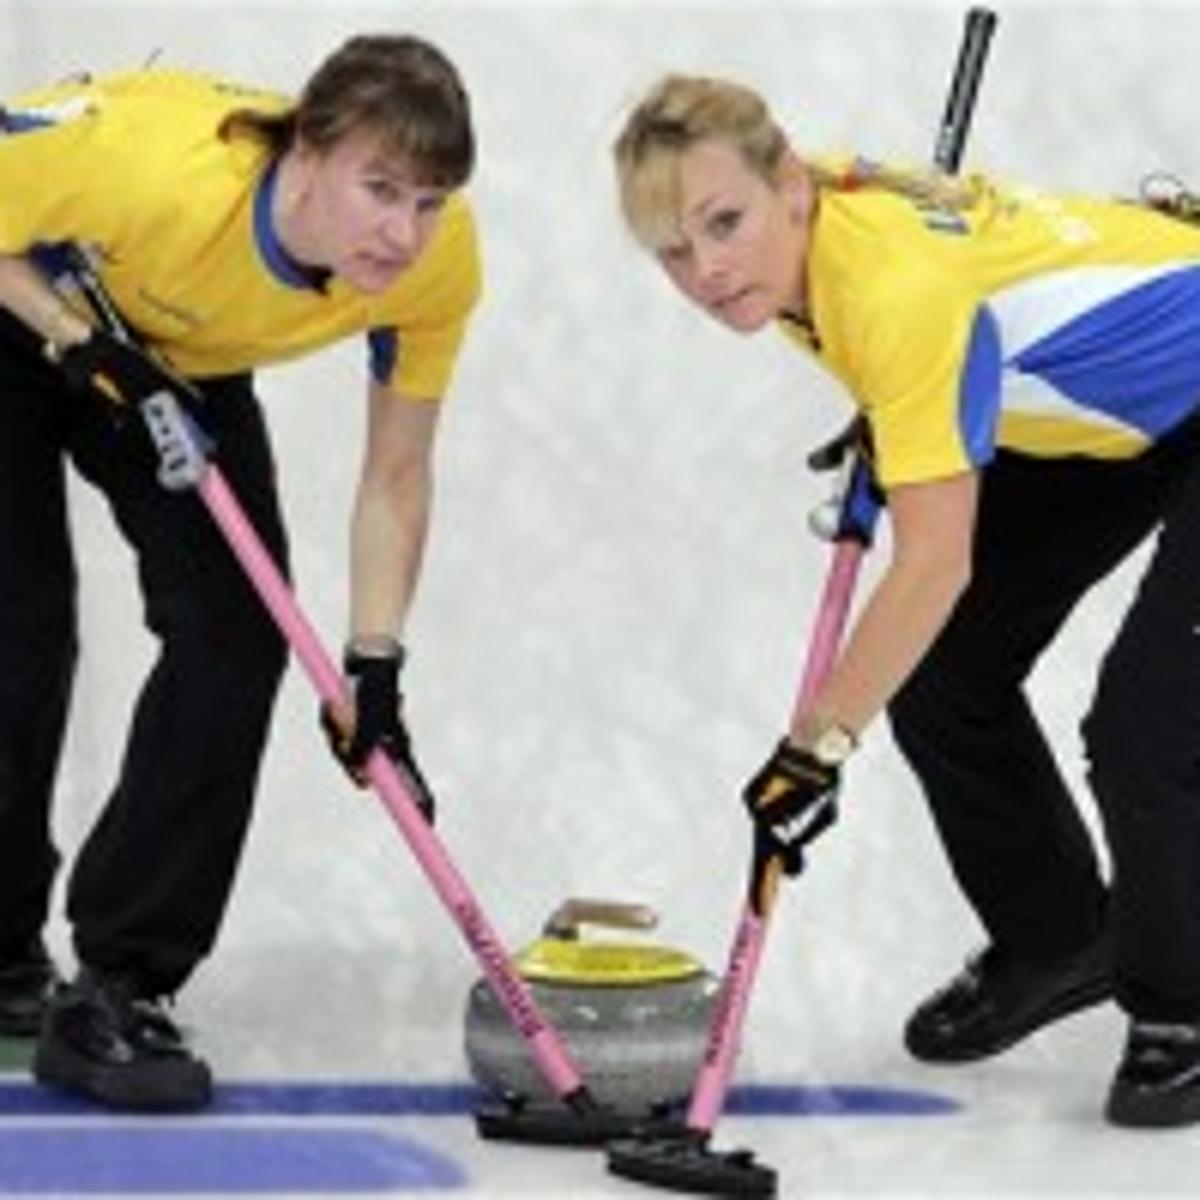 Anette Norberg sweden wins 2nd straight gold in women's curling | olympics